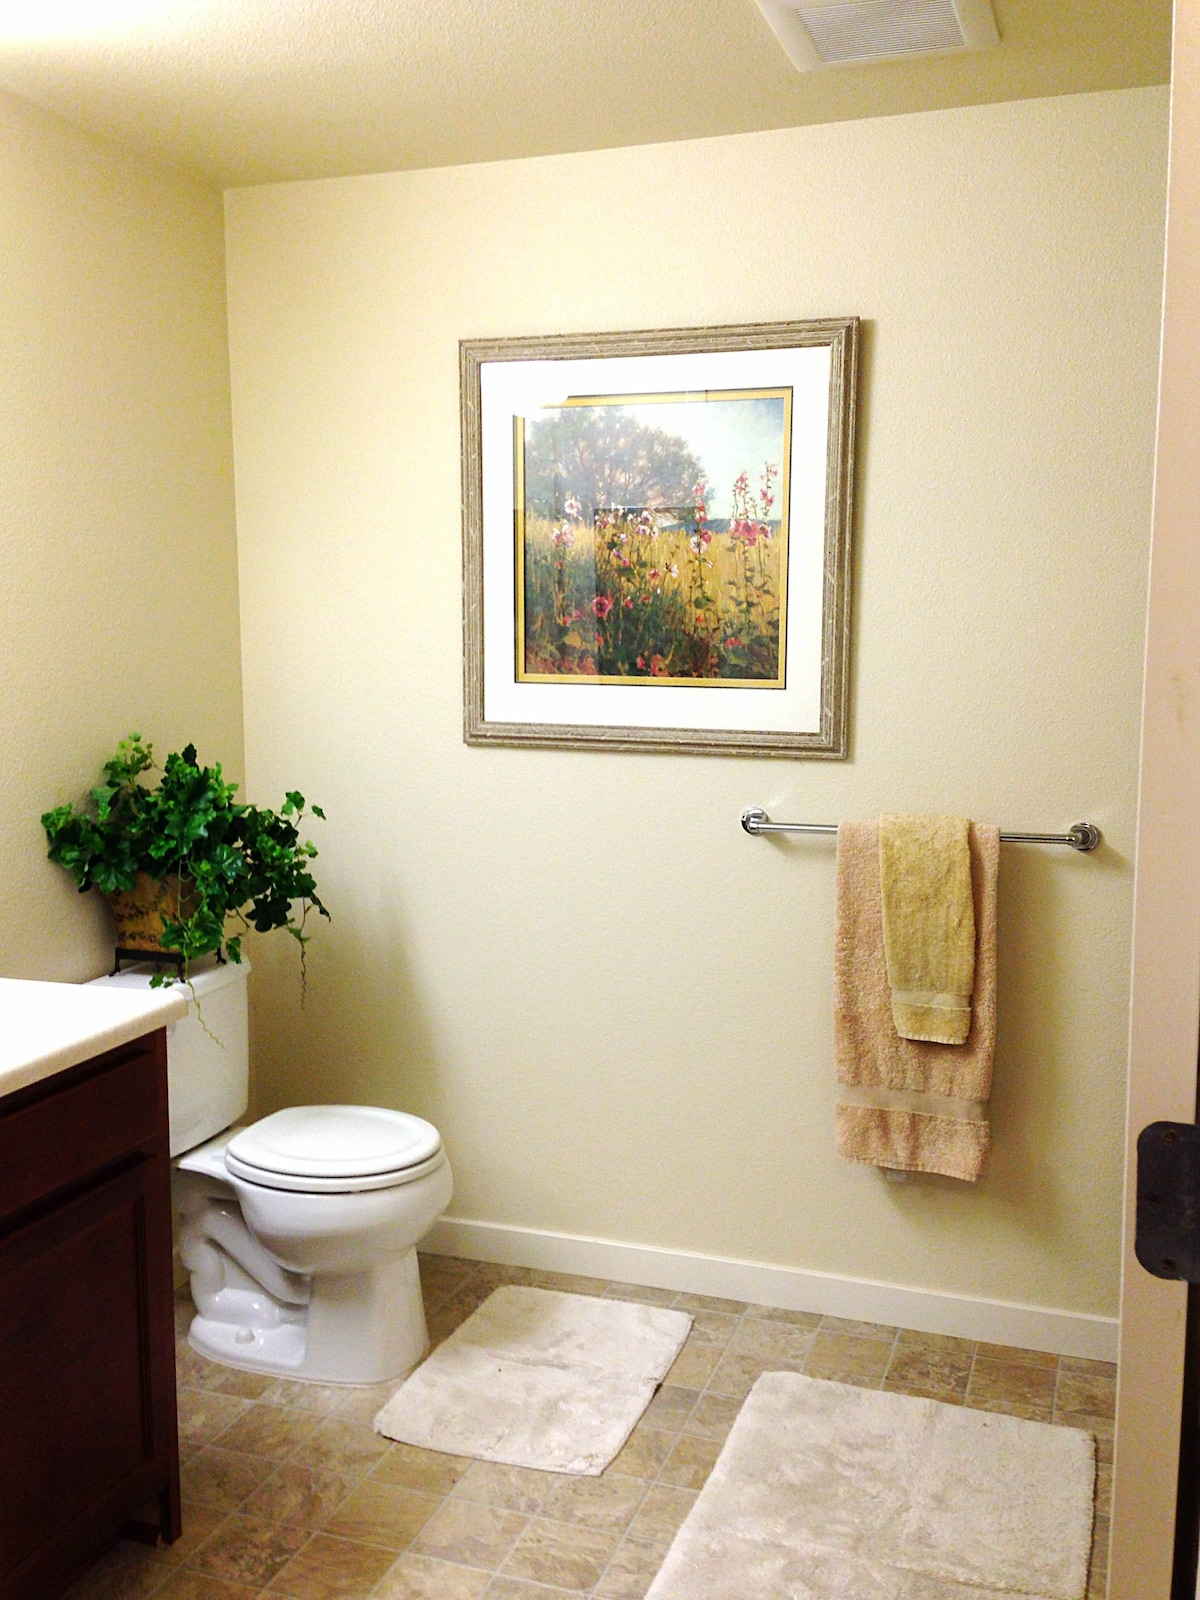 Brand new bathroom. Bright and spacious.